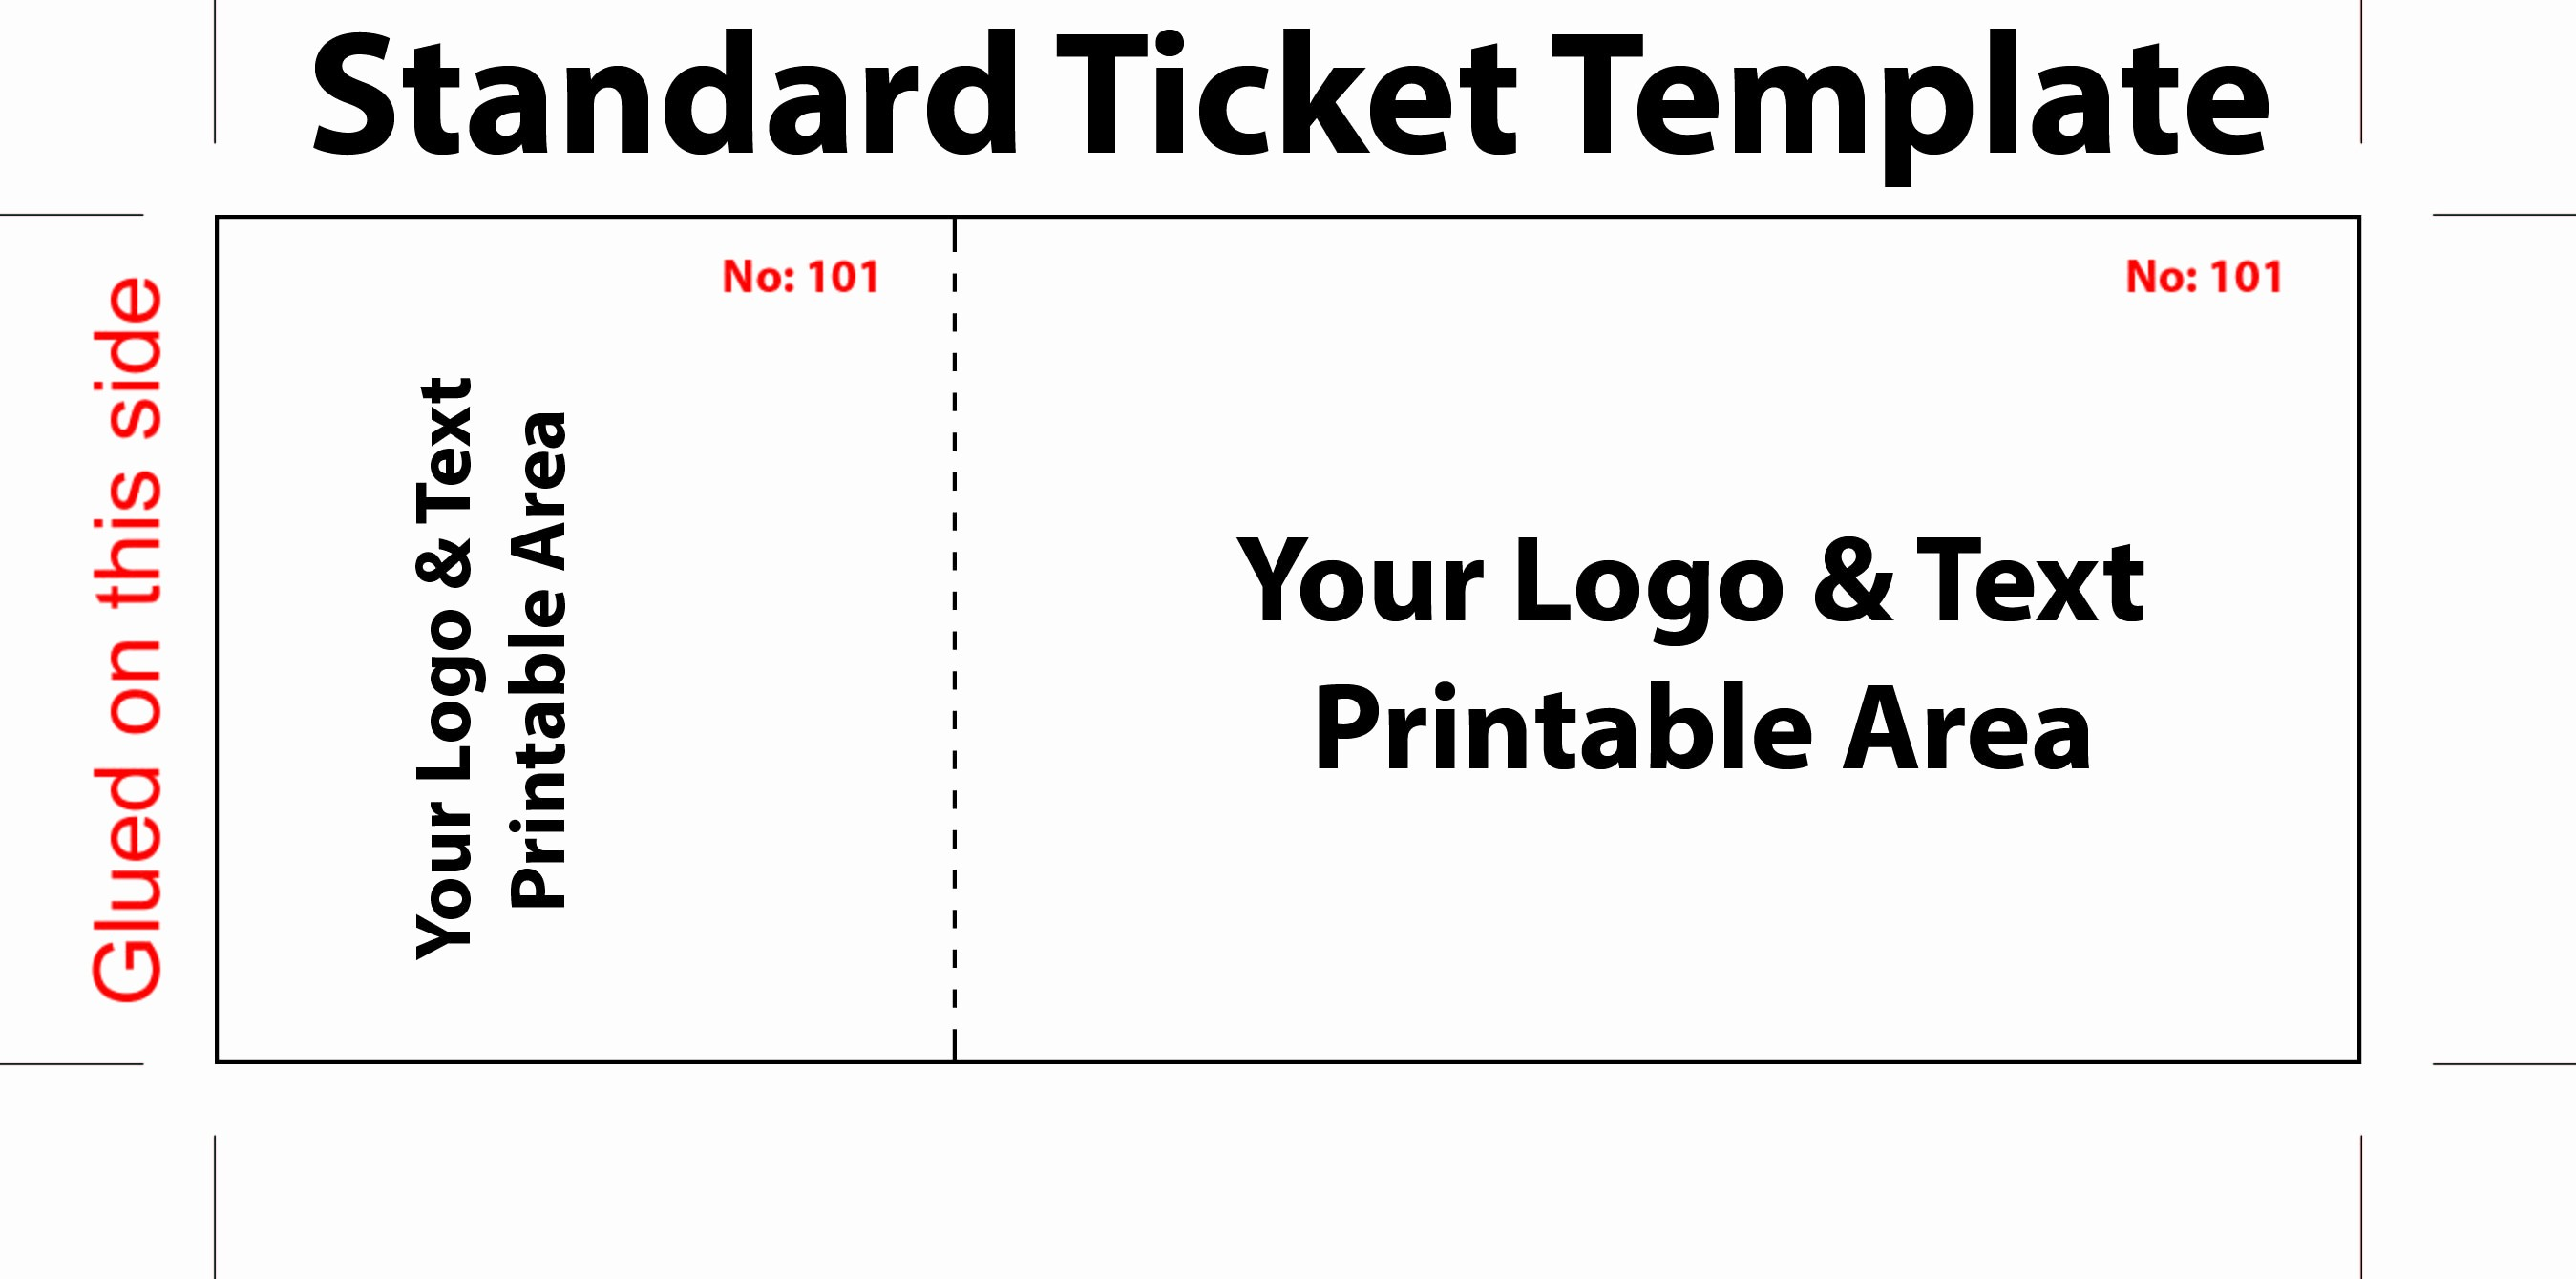 Free Printable Admission Ticket Template Unique Free Editable Standard Ticket Template Example for Concert